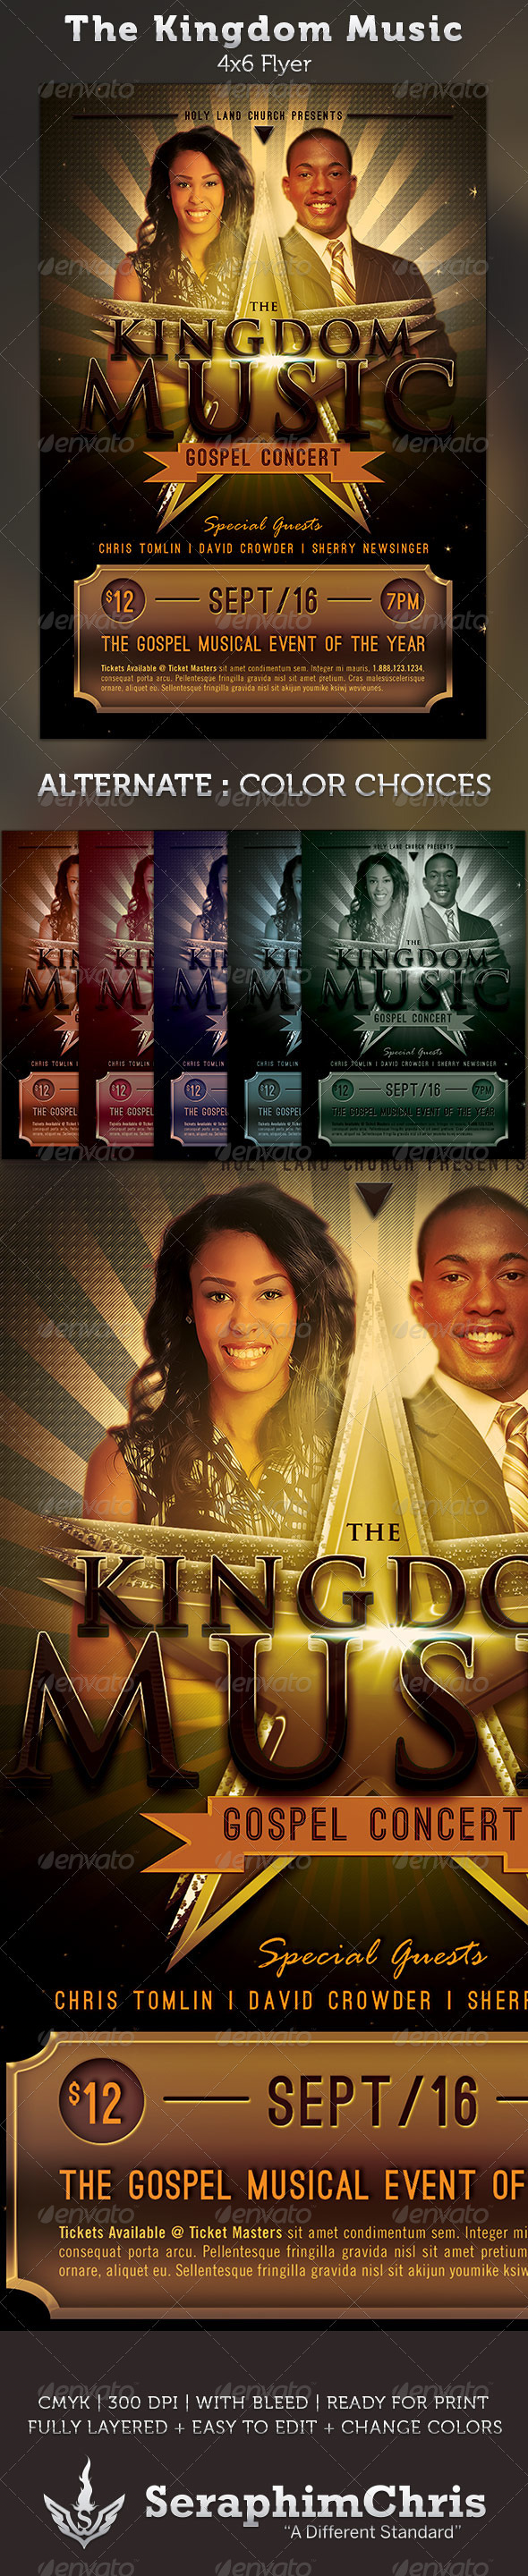 The Kingdom Music: Gospel Concert Flyer Template - Church Flyers